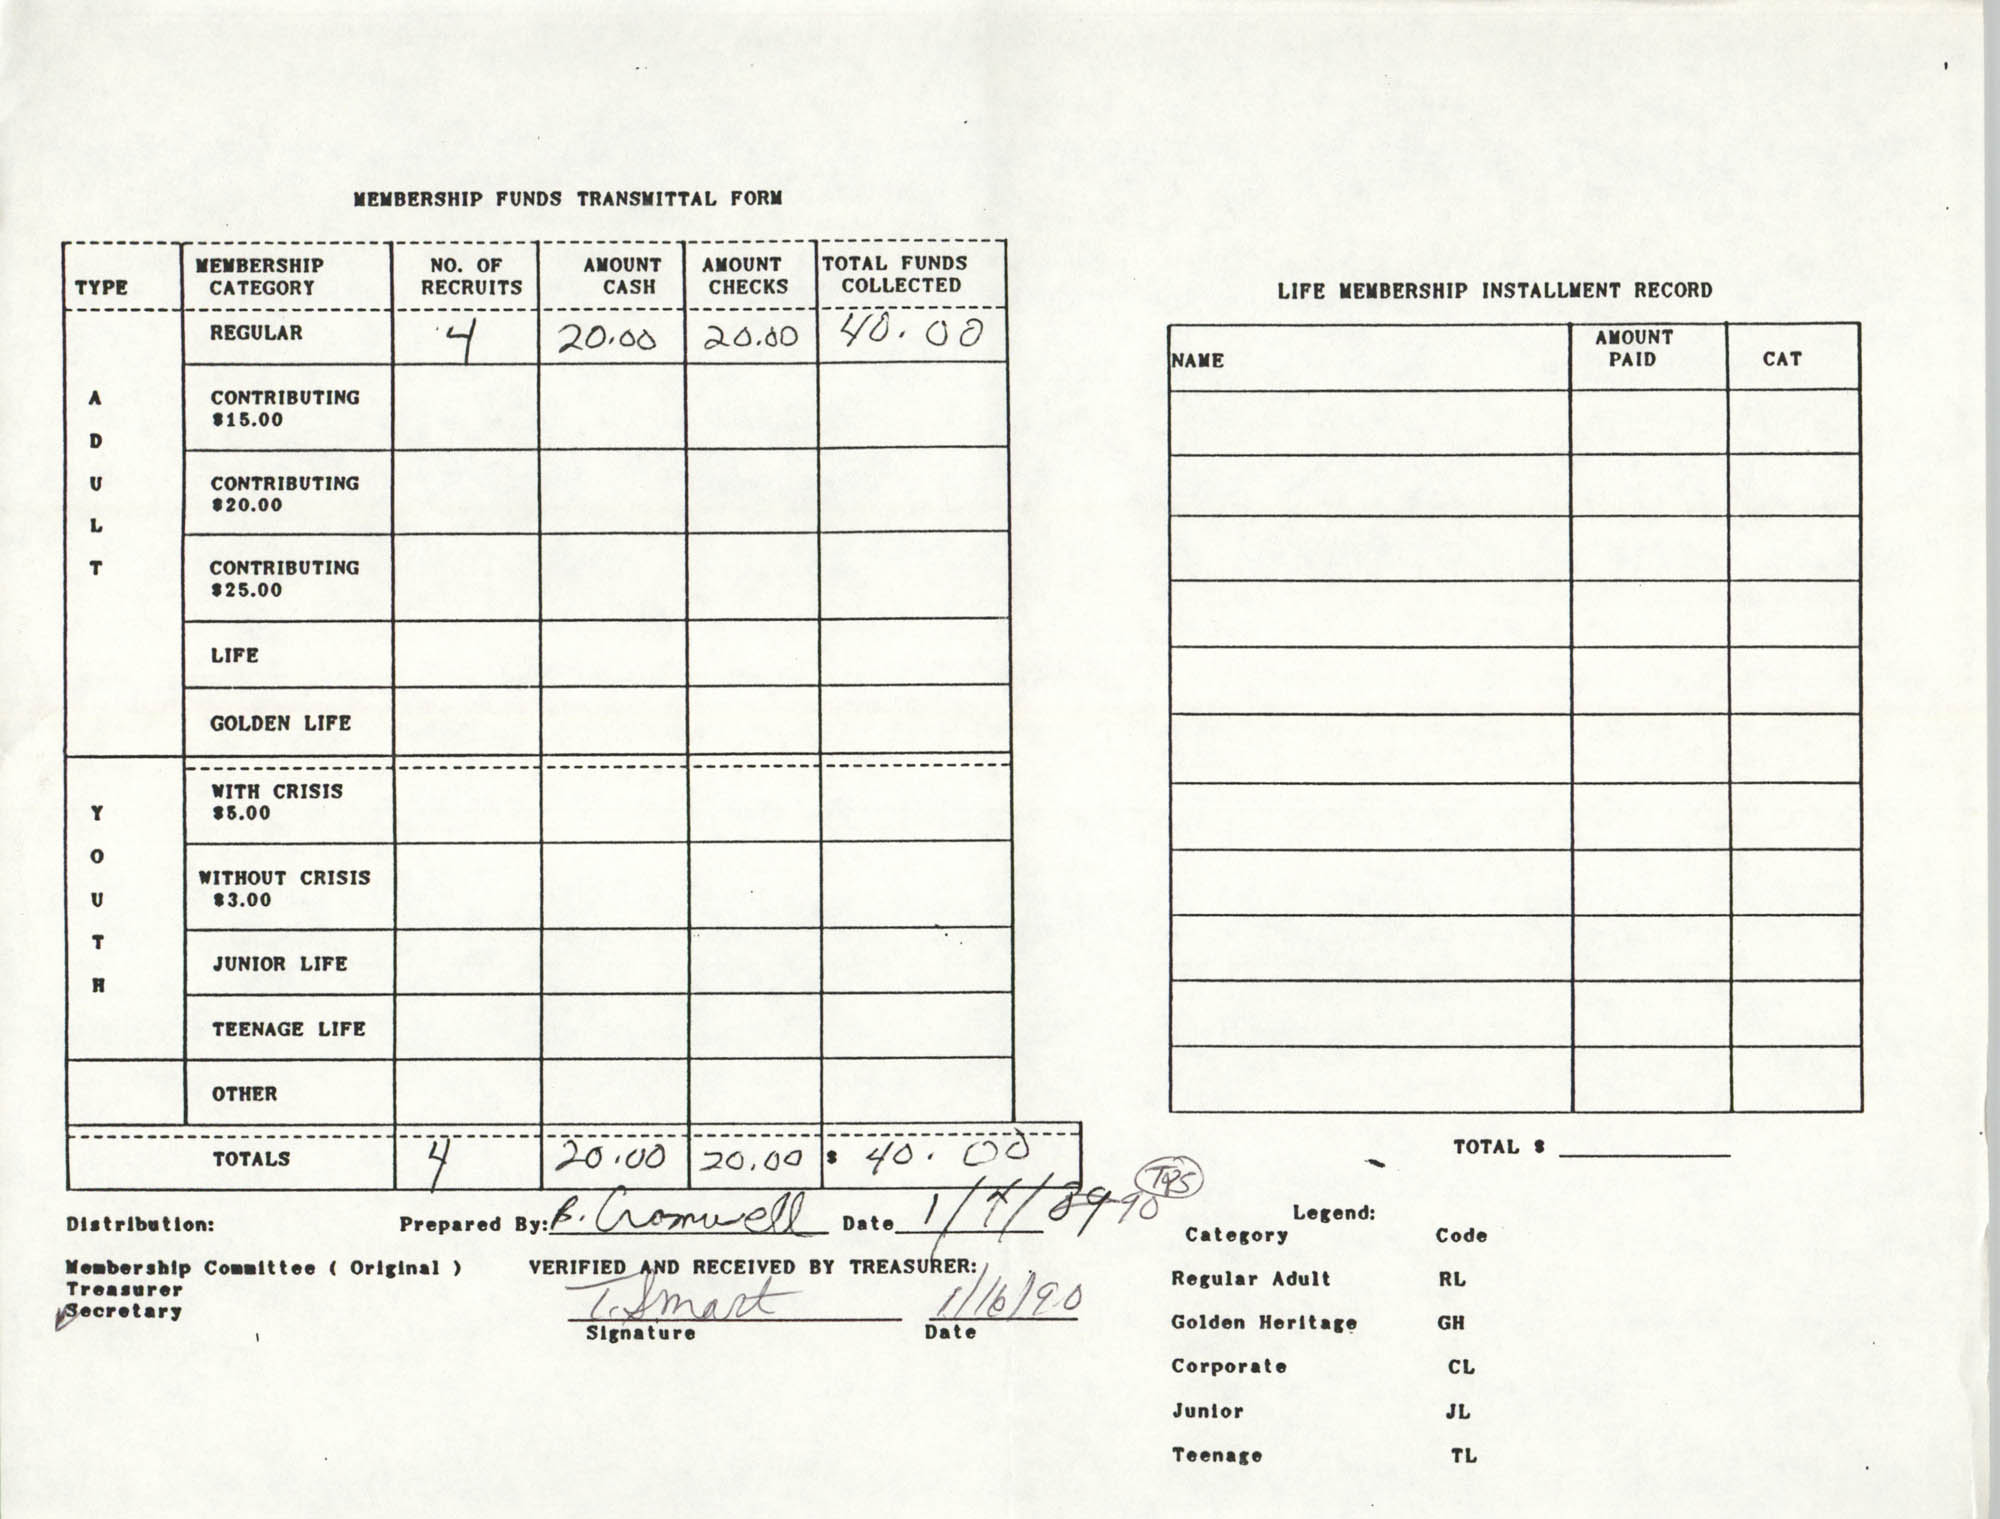 Charleston Branch of the NAACP Funds Transmittal Forms, January 1990, Page 2